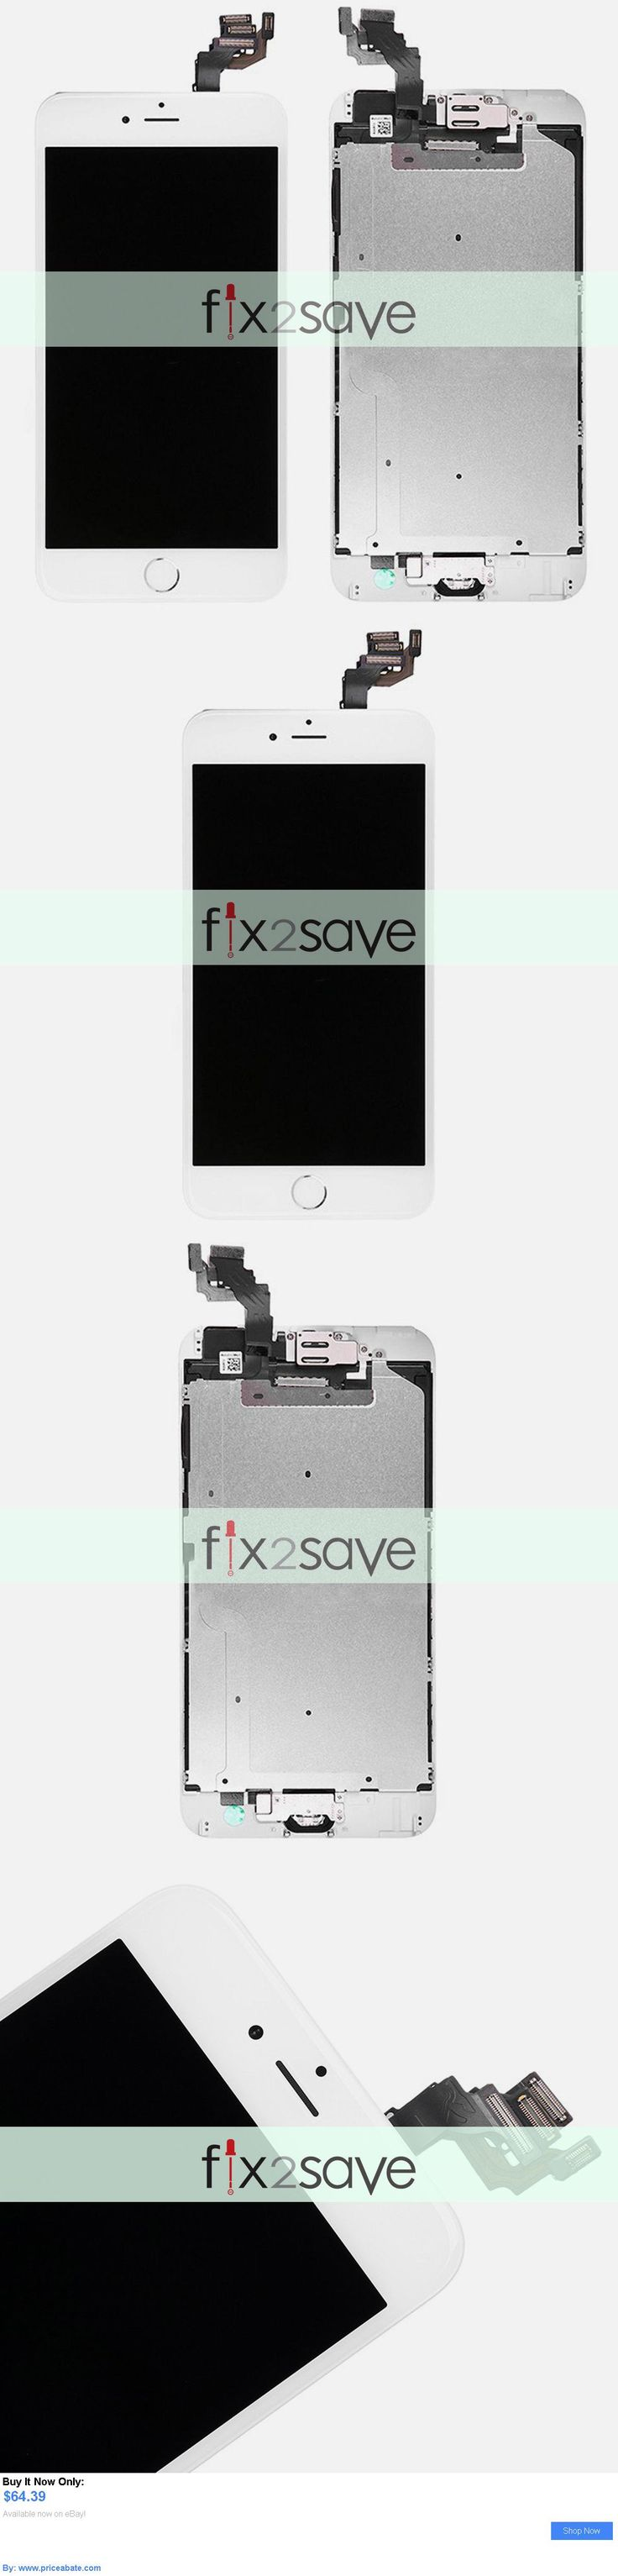 general for sale: White Lcd Touch Screen Digitizer Display Assembly Replacement Iphone 6 Plus 5.5 BUY IT NOW ONLY: $64.39 #priceabategeneralforsale OR #priceabate